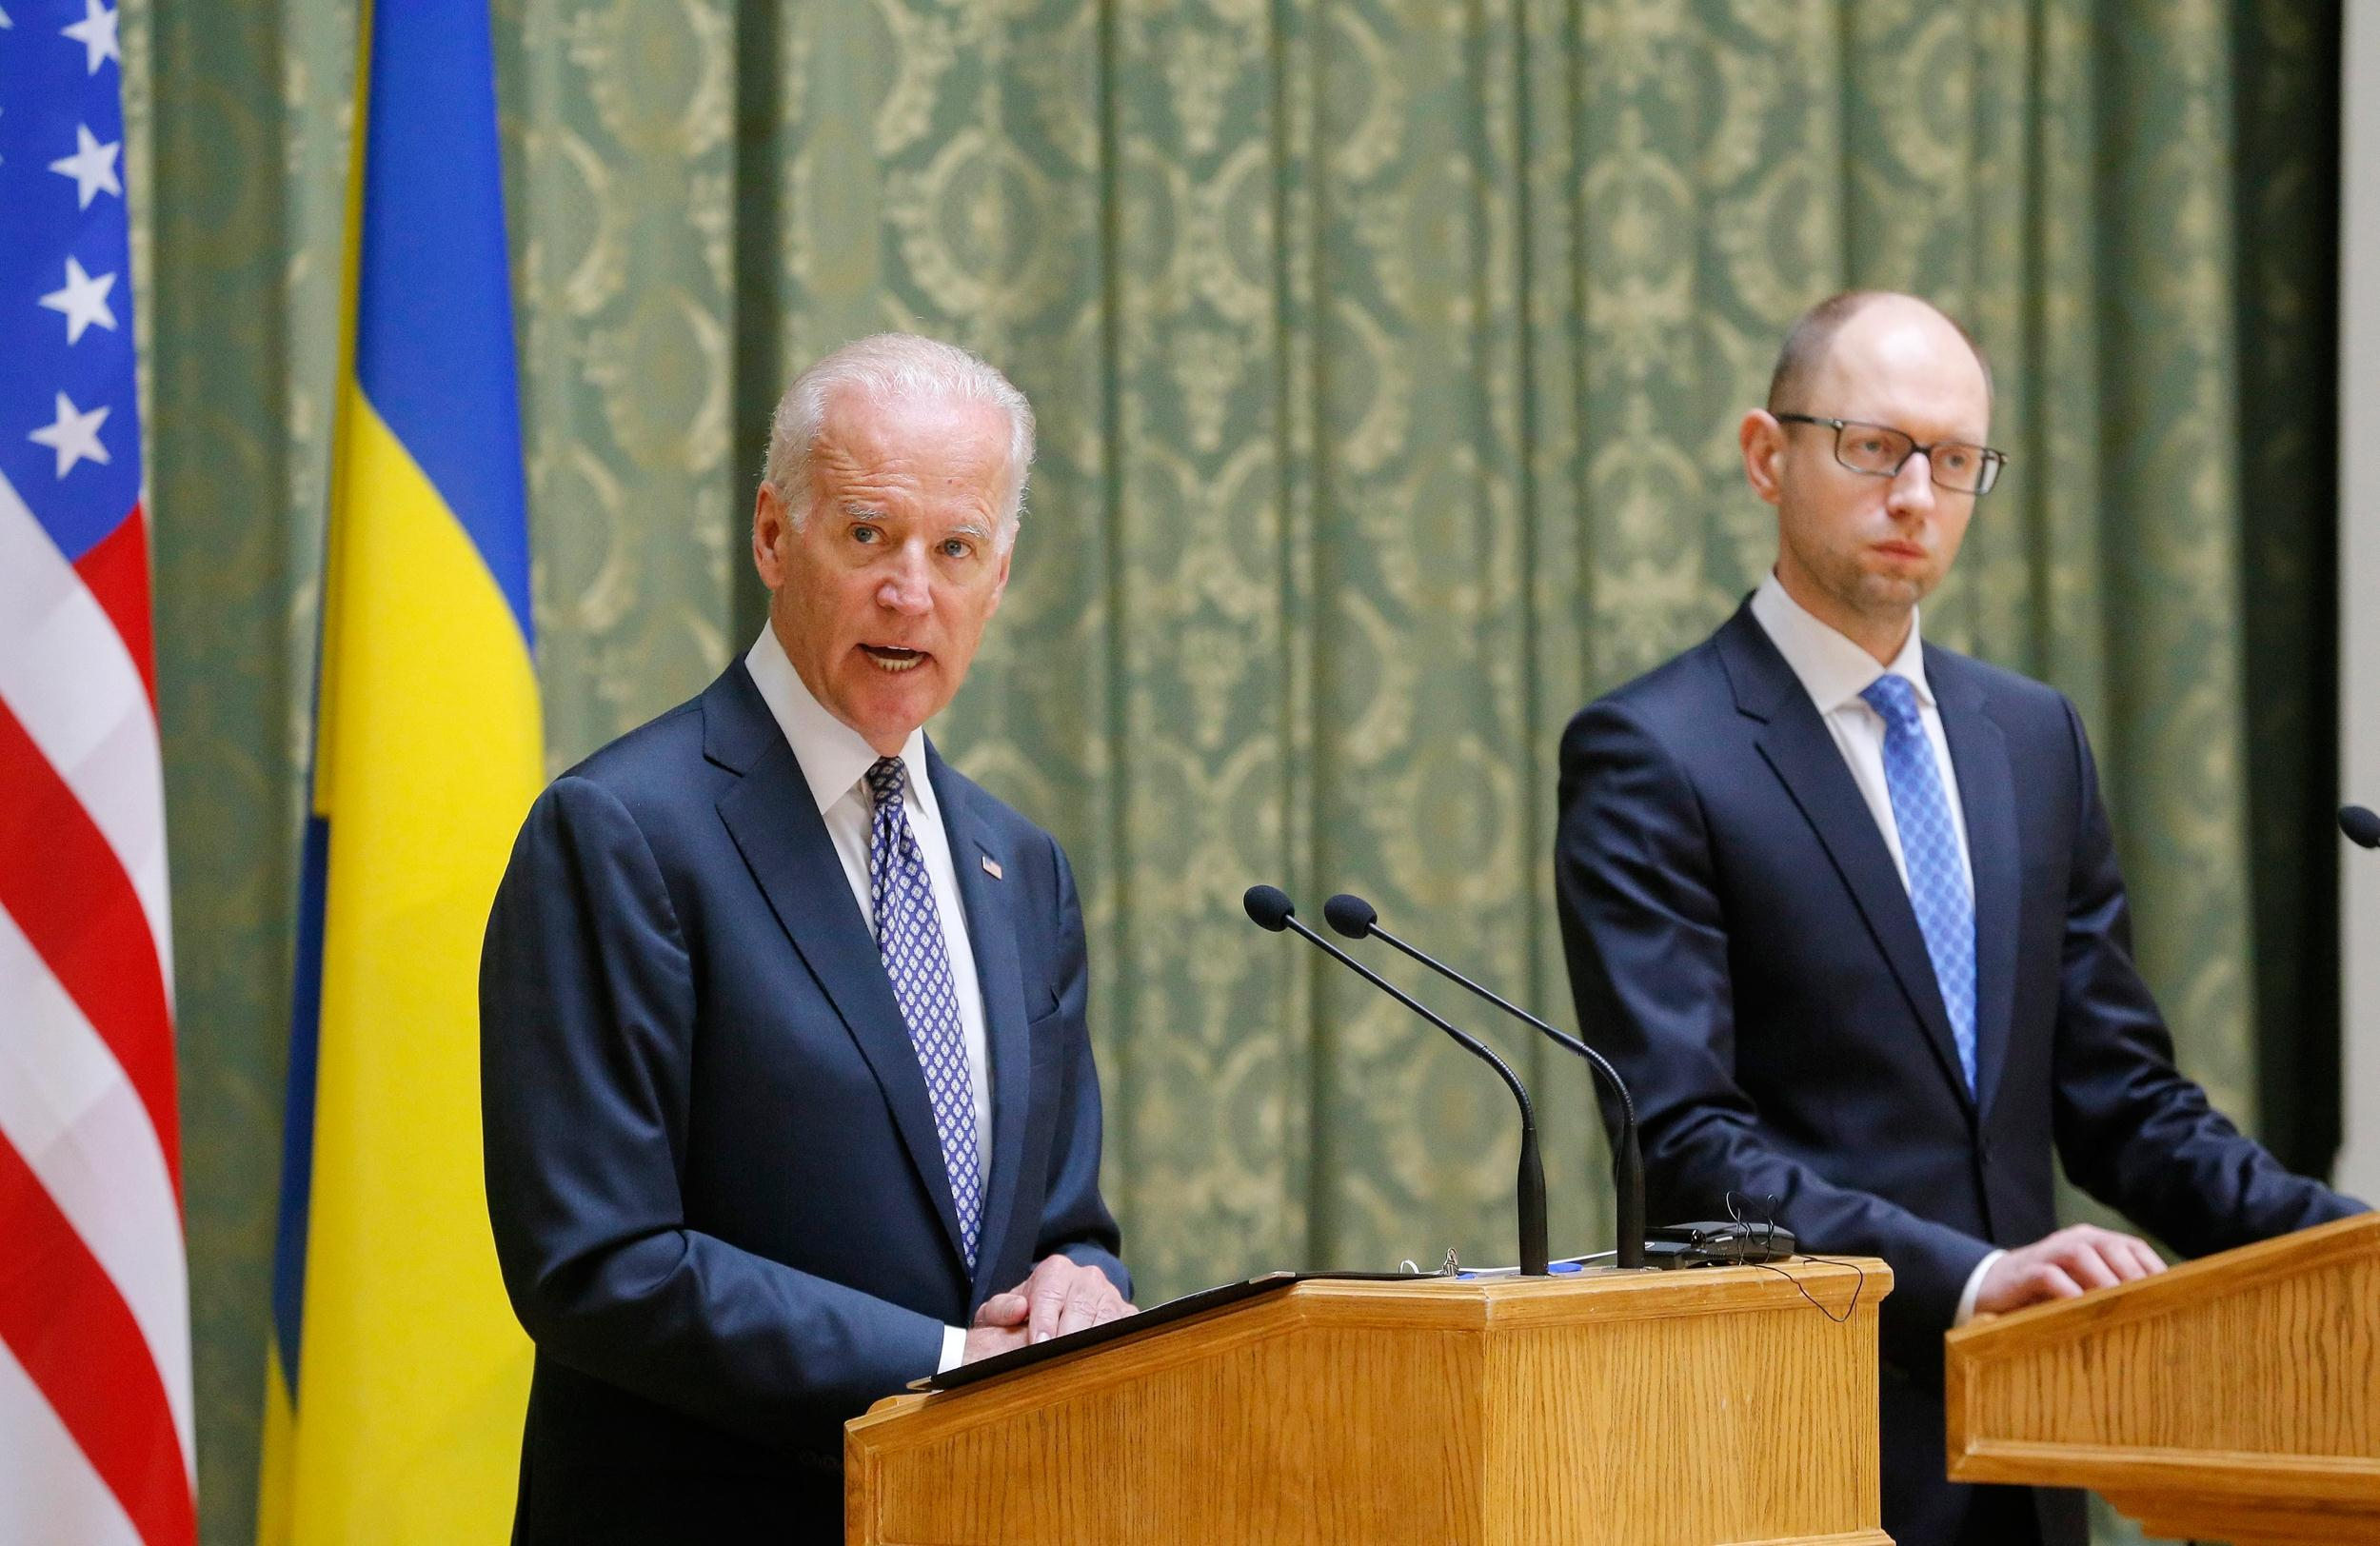 Image: US Vice President Joe Biden visits Ukraine